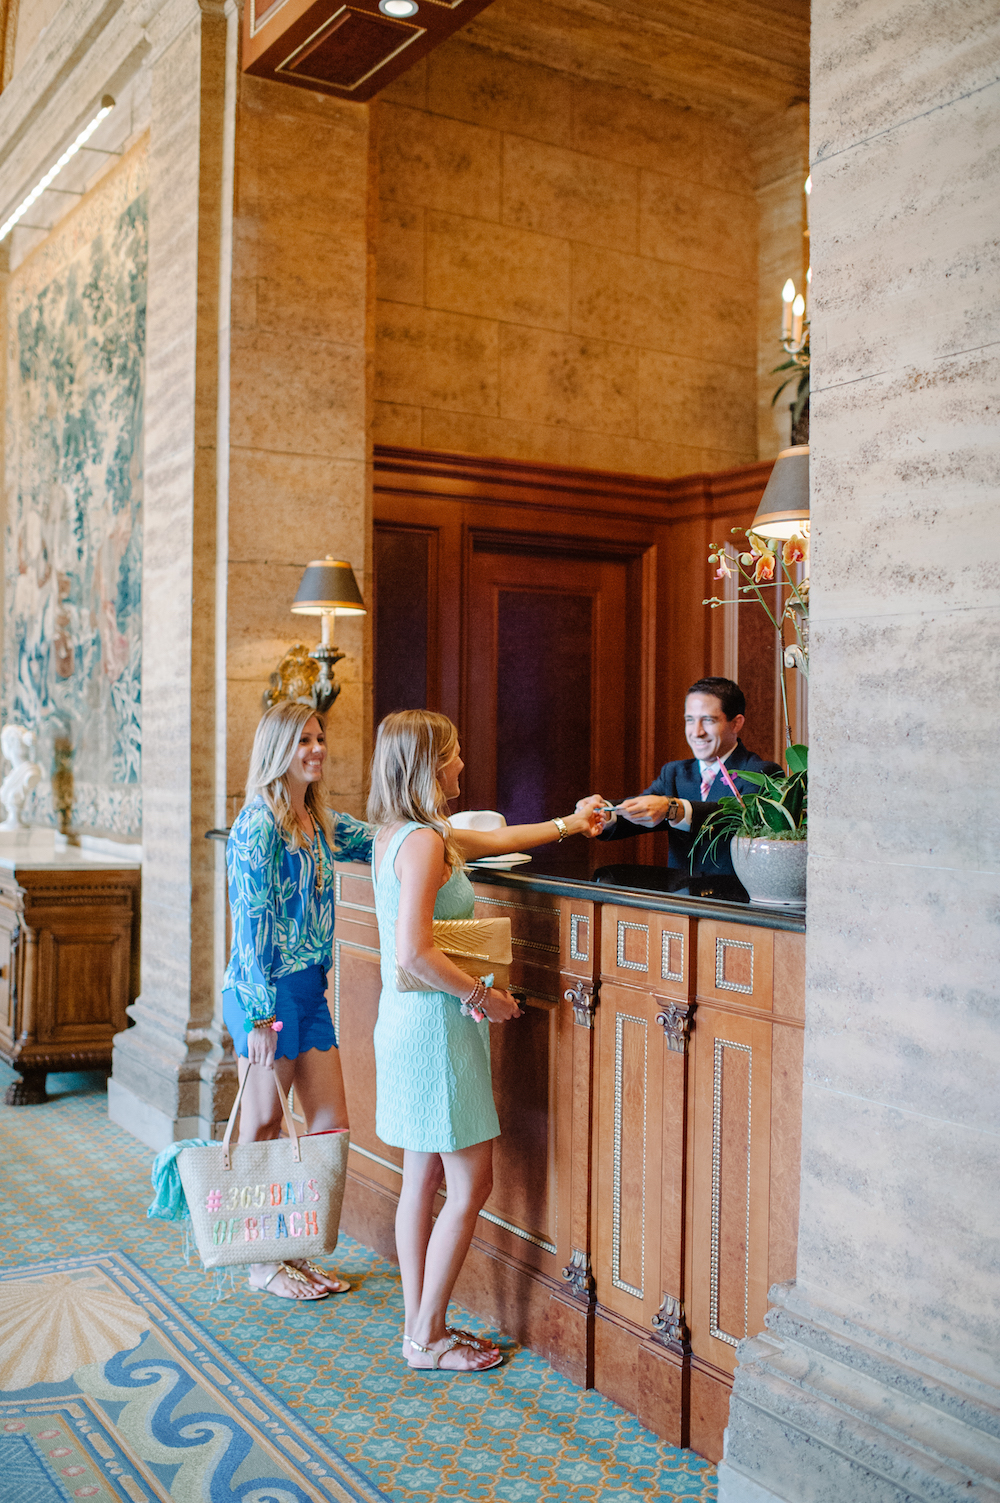 vacation_the_breakers_palm_beach_lobby_lilly_pulitzer_fashion